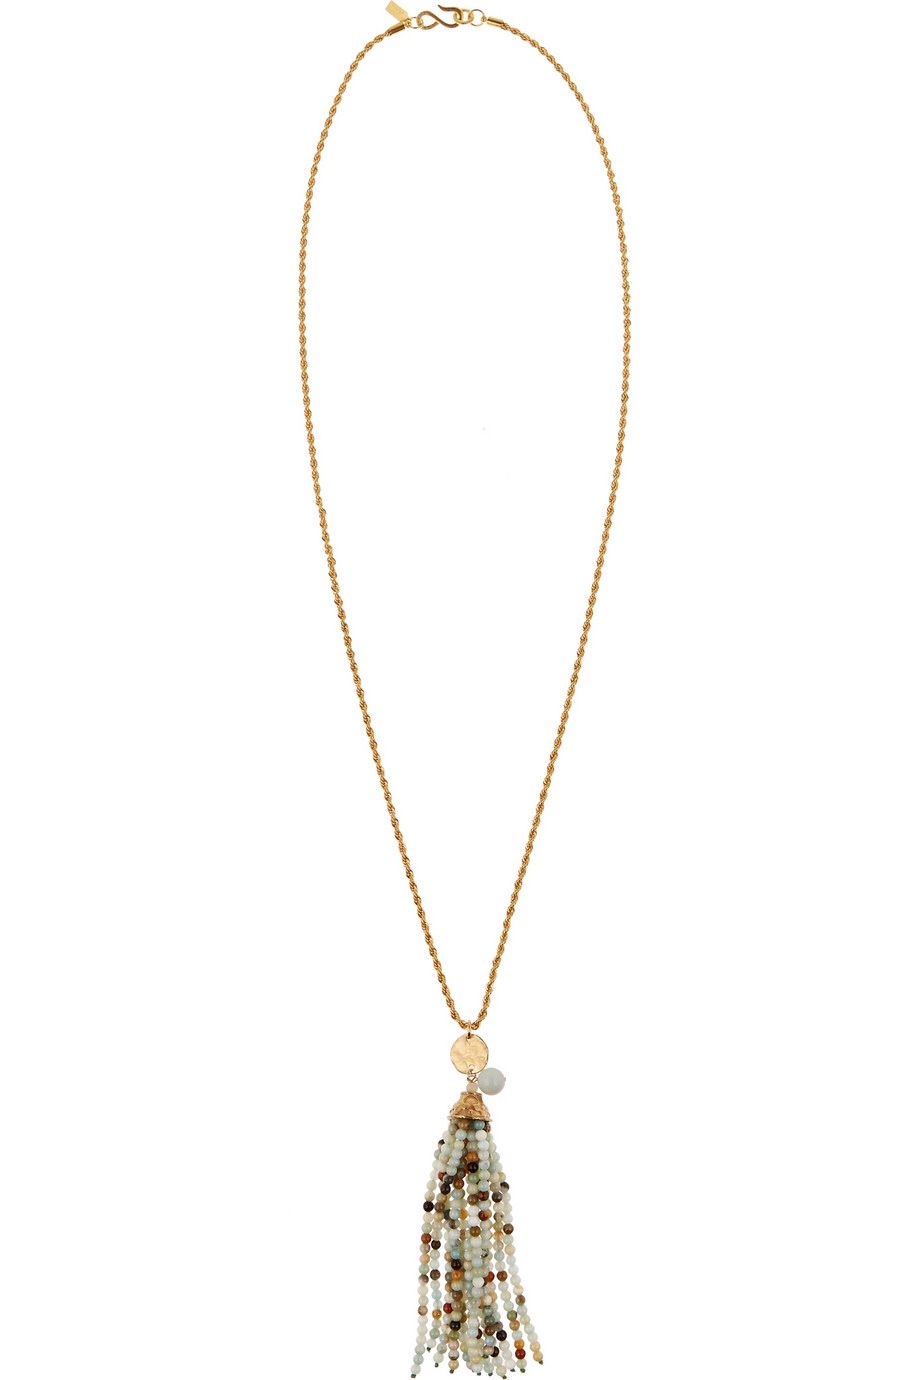 KENNETH JAY LANE Gold-plated beaded necklace €110.00 http://www.net-a-porter.com/products/573756